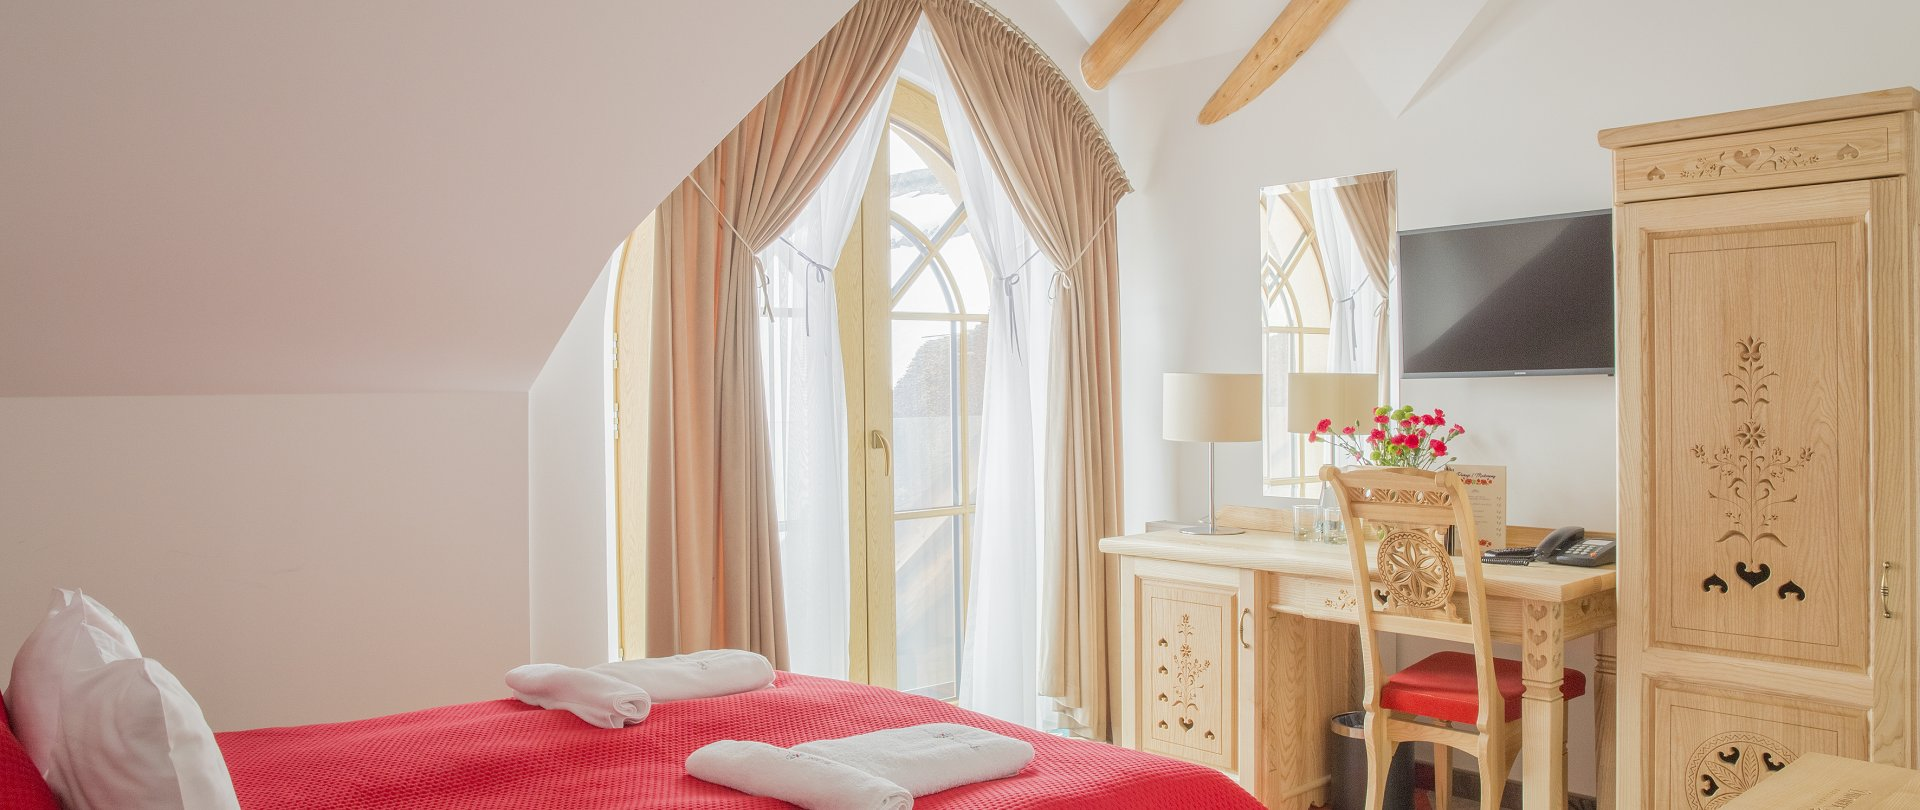 Single Comfort Room with a double bed